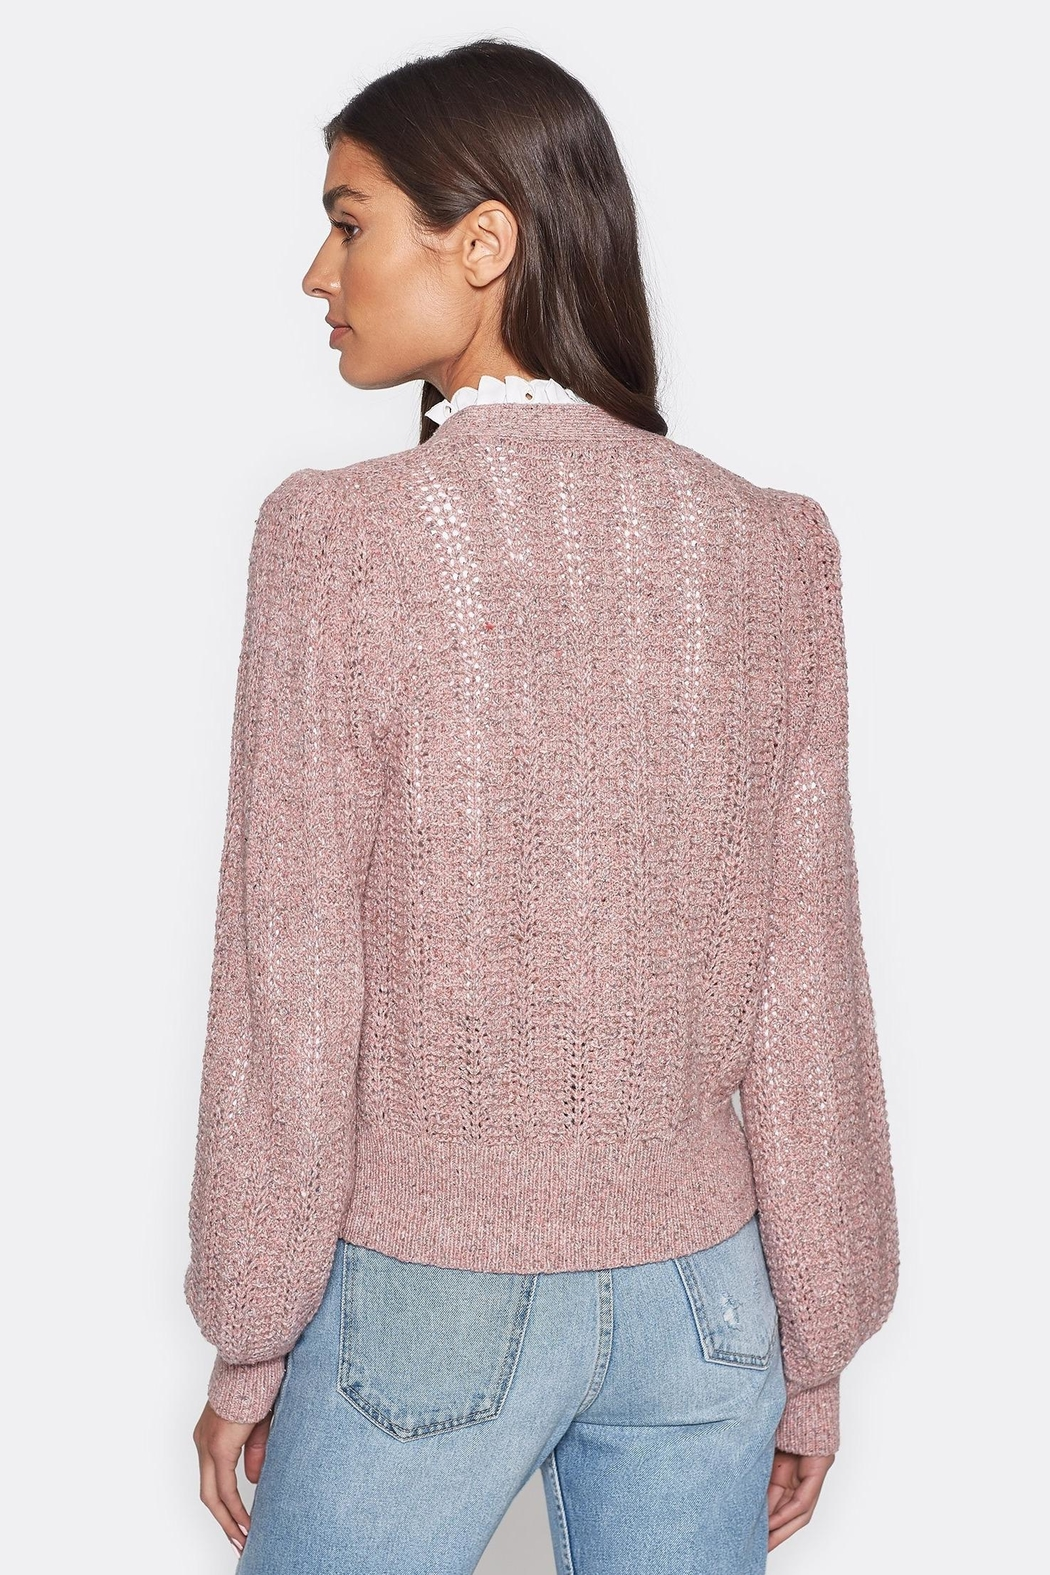 Folle de Joie Bilina Lilac Sweater - Back Cropped Image